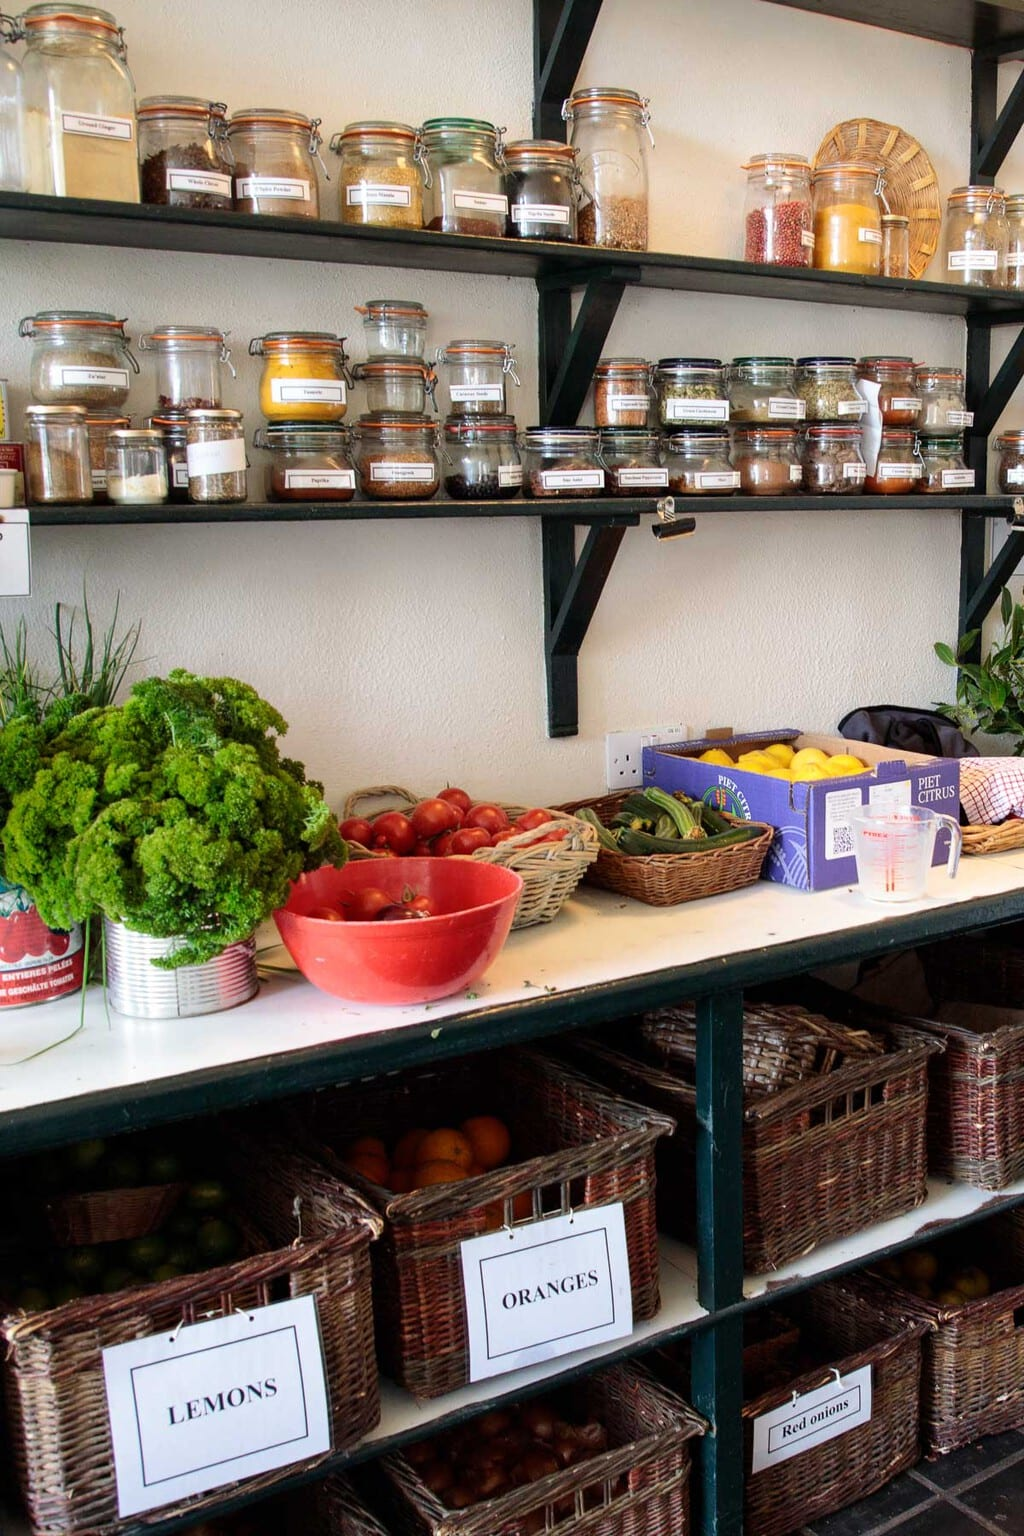 The supply pantry at Ballymaloe Cookery School.